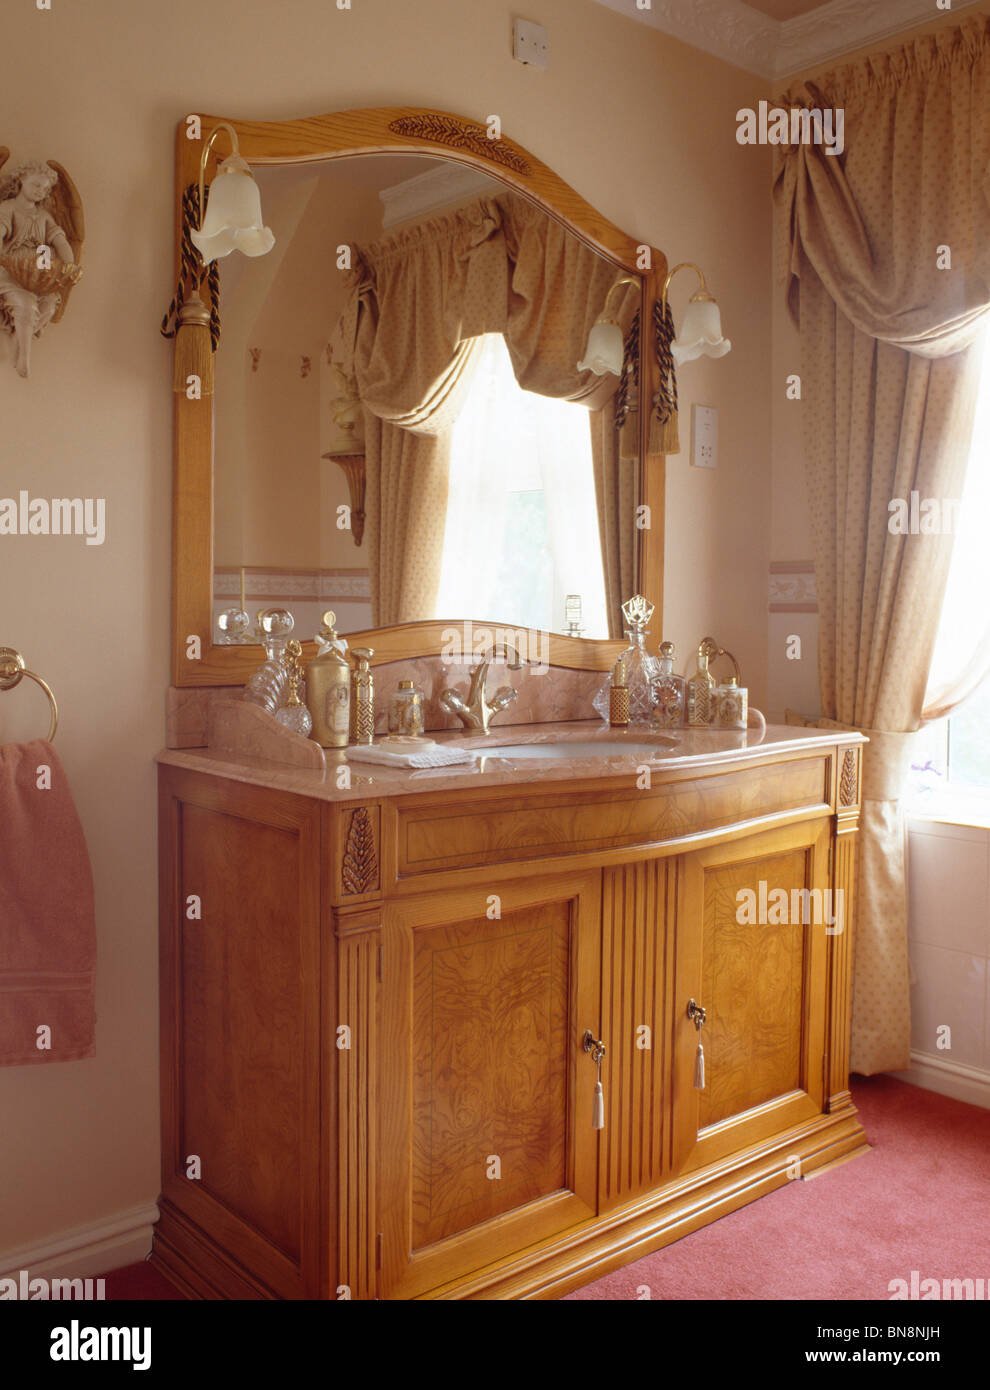 Large mirror above pale wood vanity unit in traditional bathroom - Stock Image